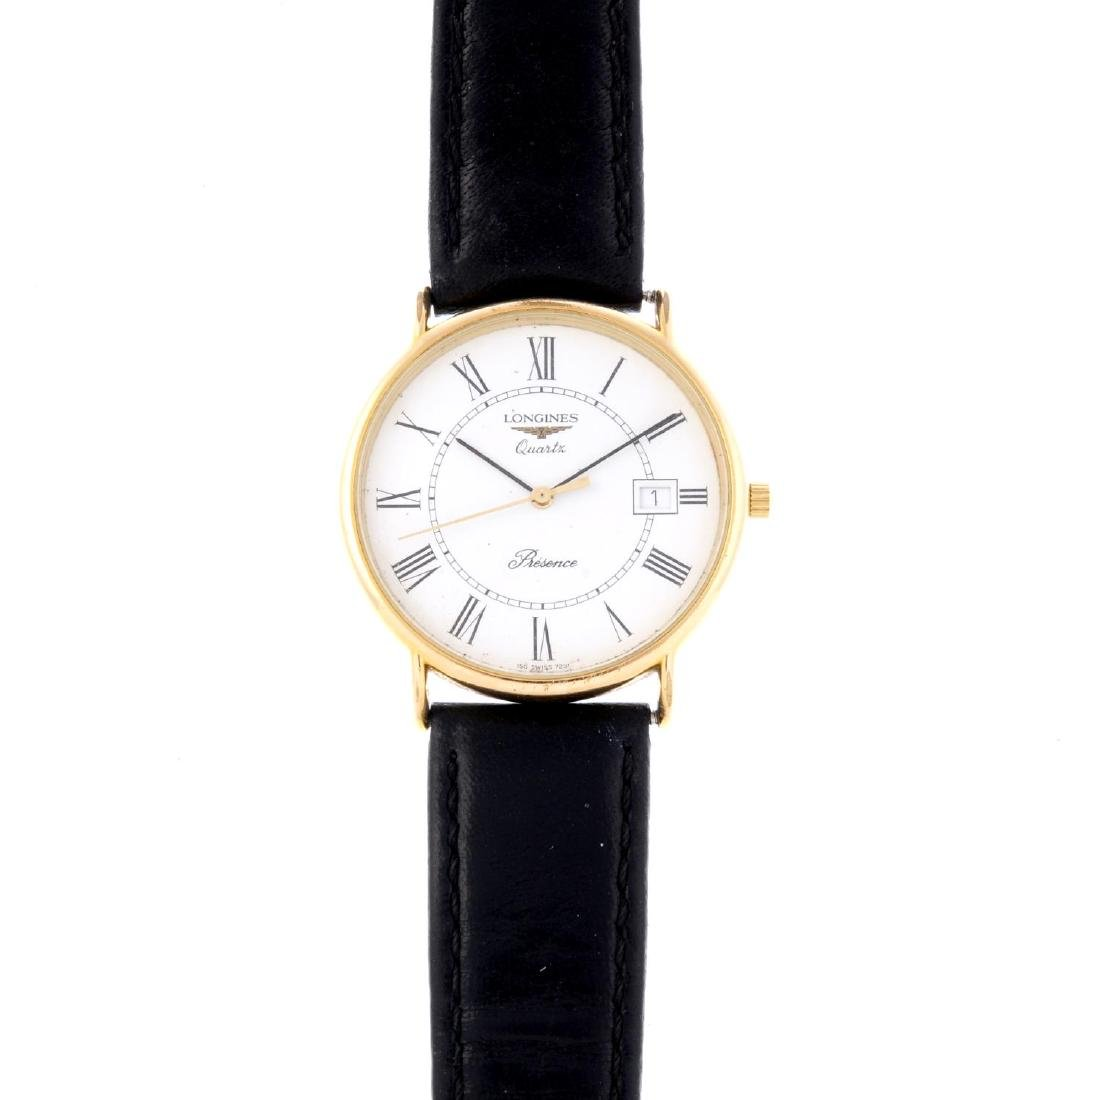 LONGINES - a gentleman's Presence wrist watch. Gold